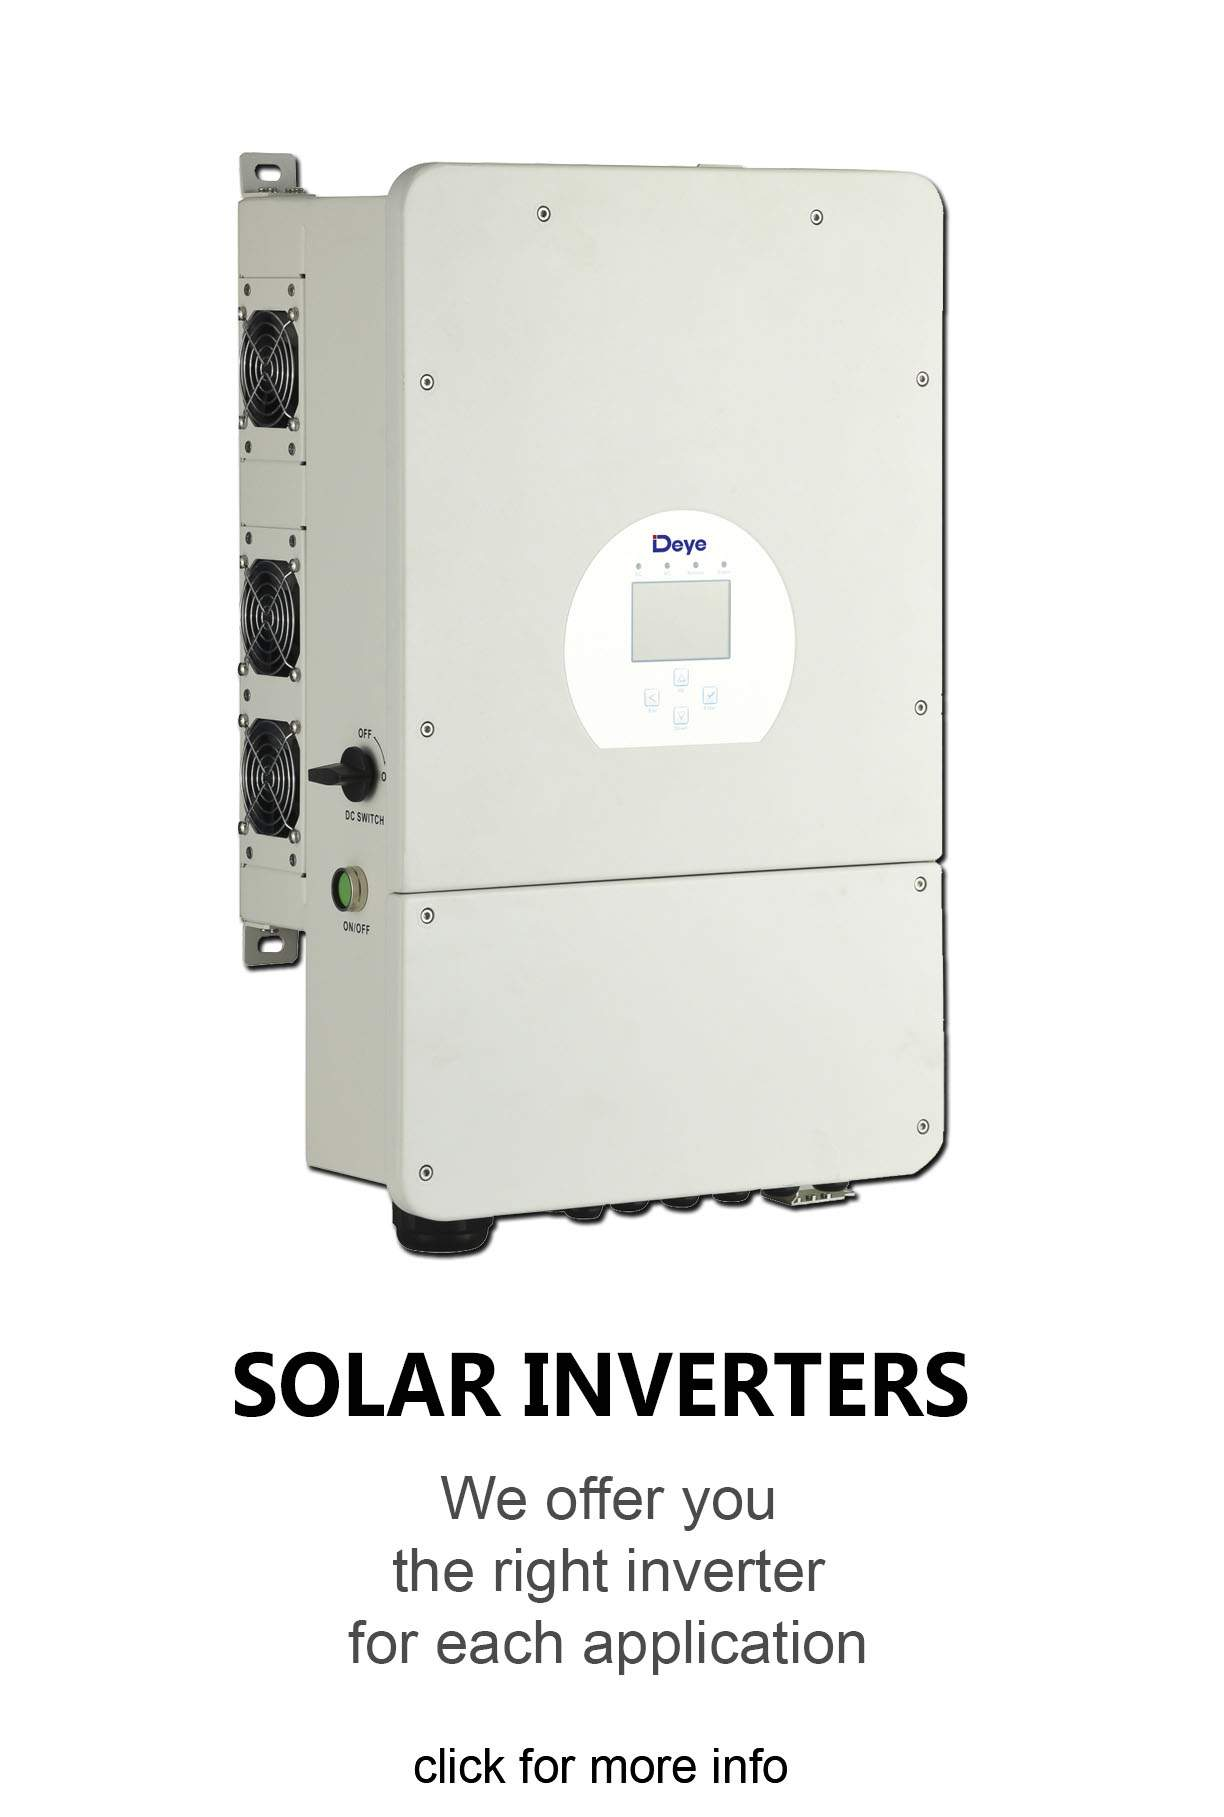 Growatt hybrid inverter , axpert king, sofar inverter and goodwe inverters for sale in Pretoria south africa.